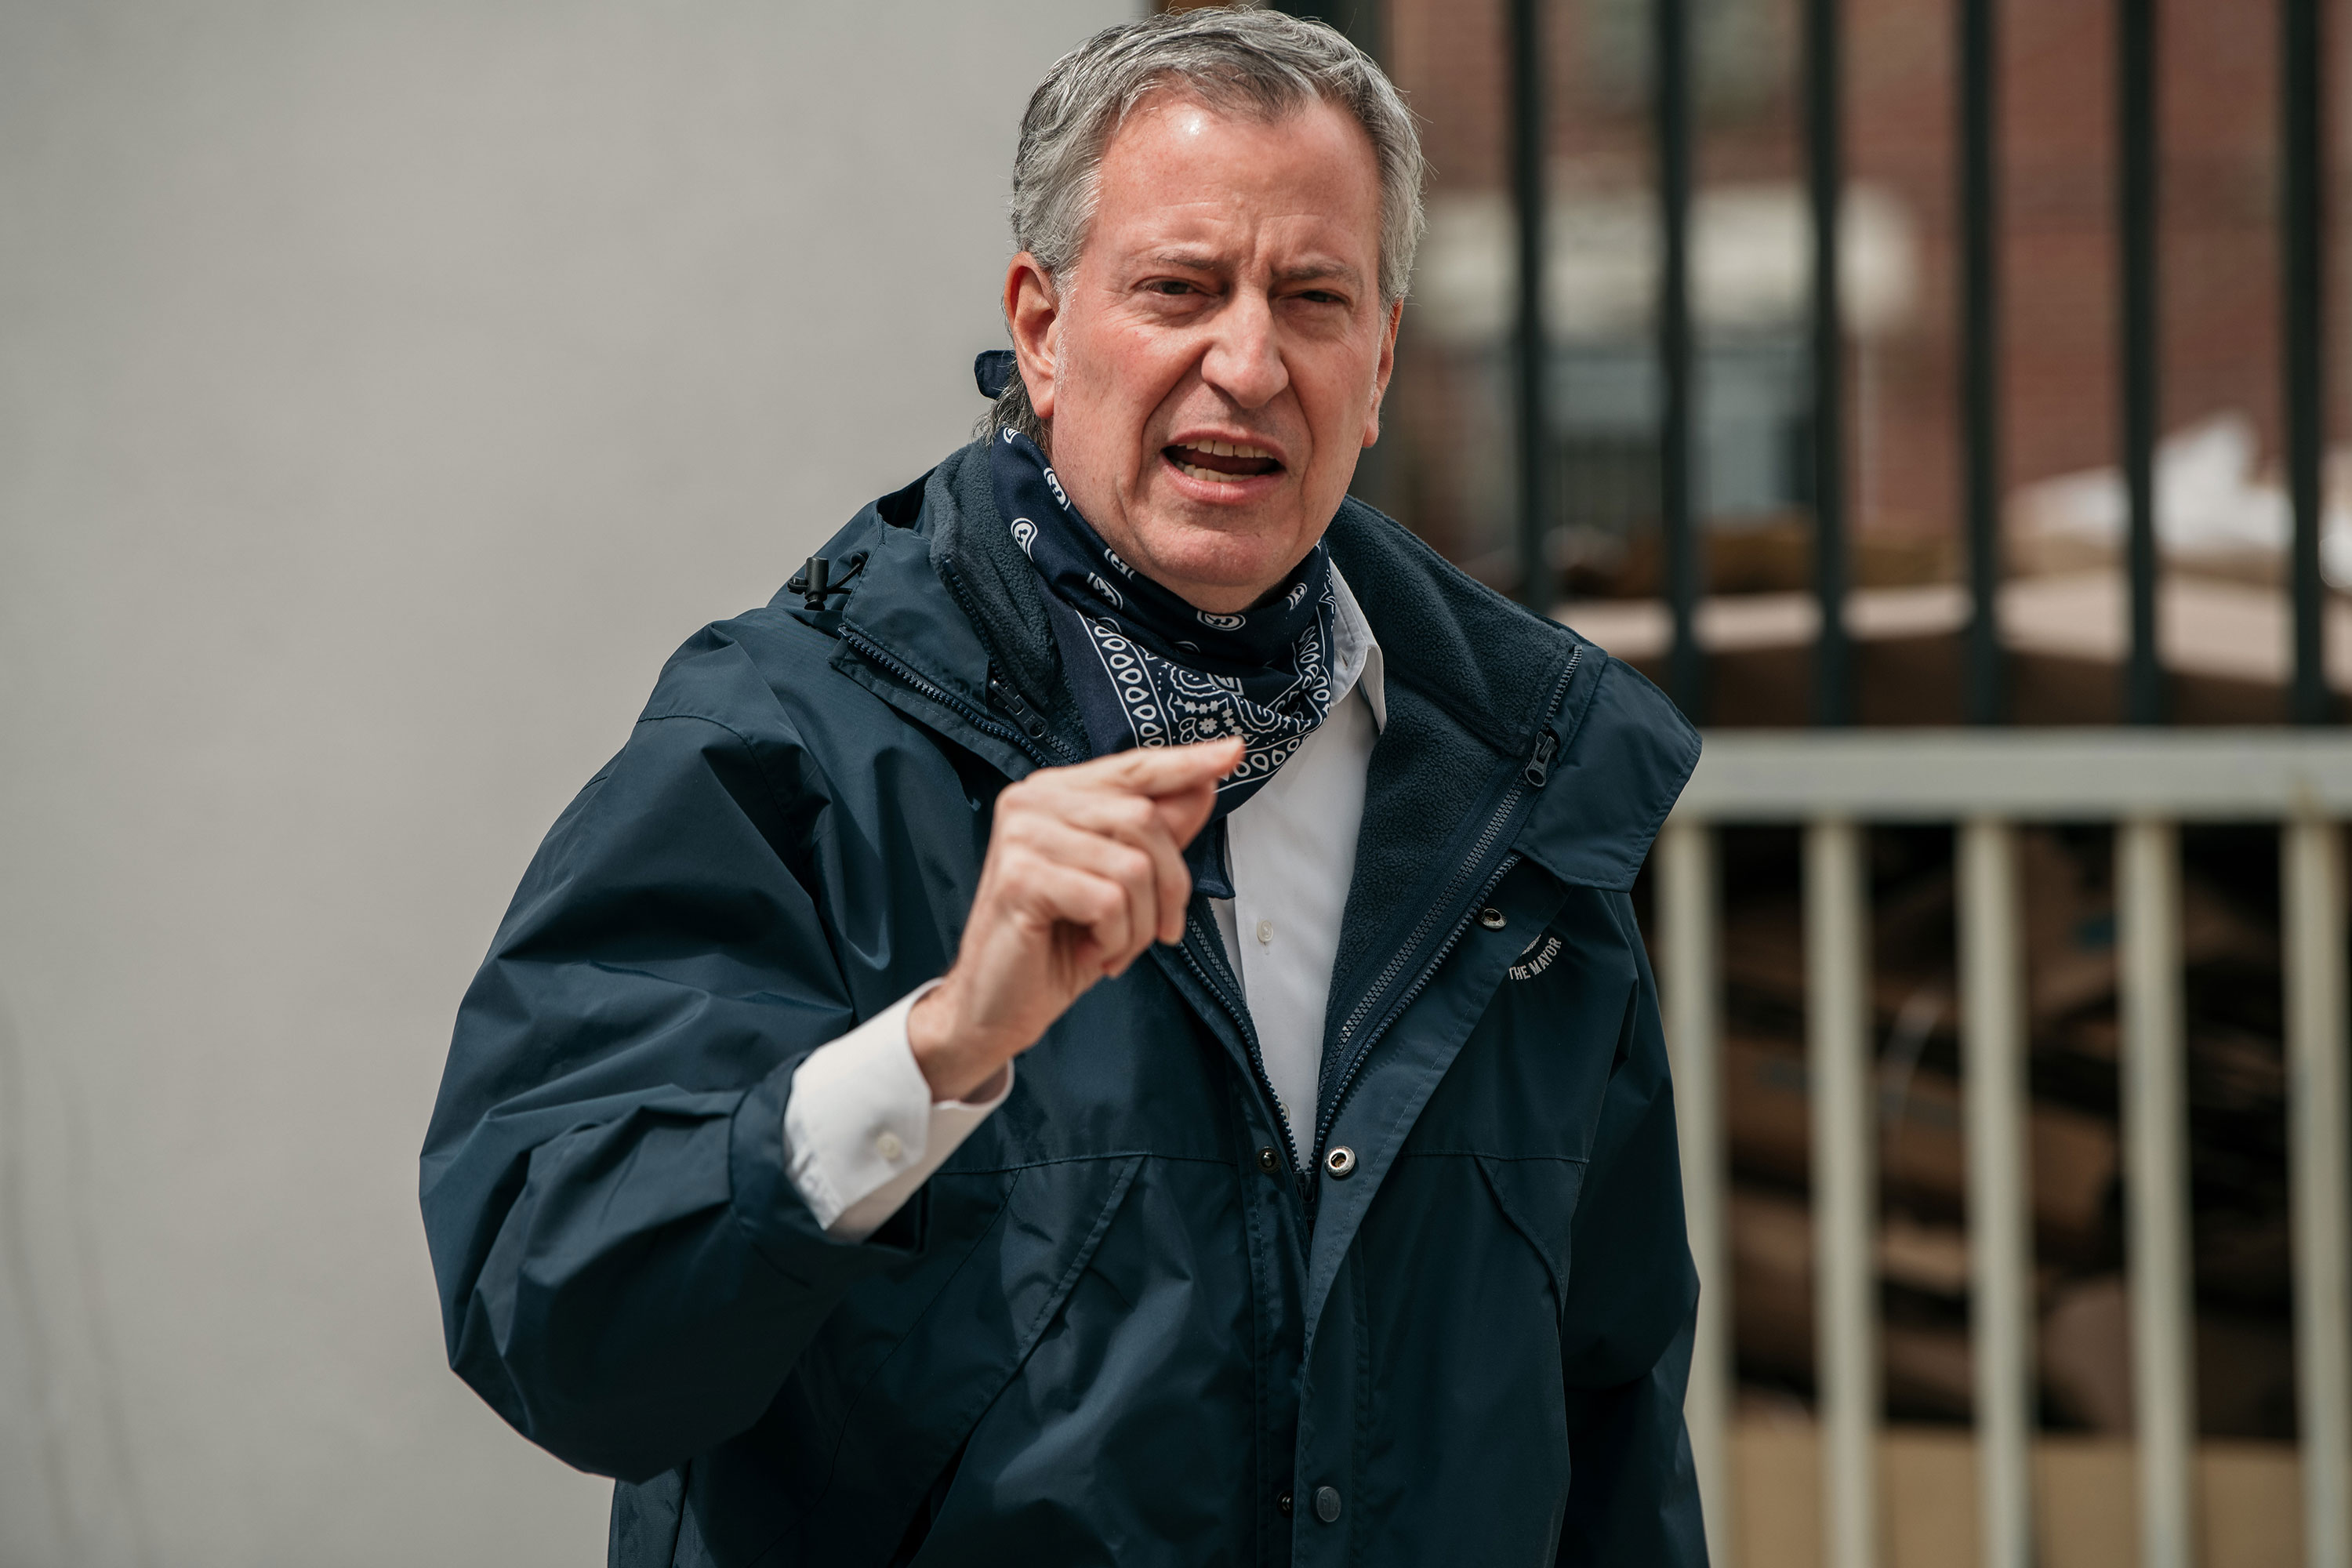 New York City Mayor Bill de Blasio speaks to the press in April.